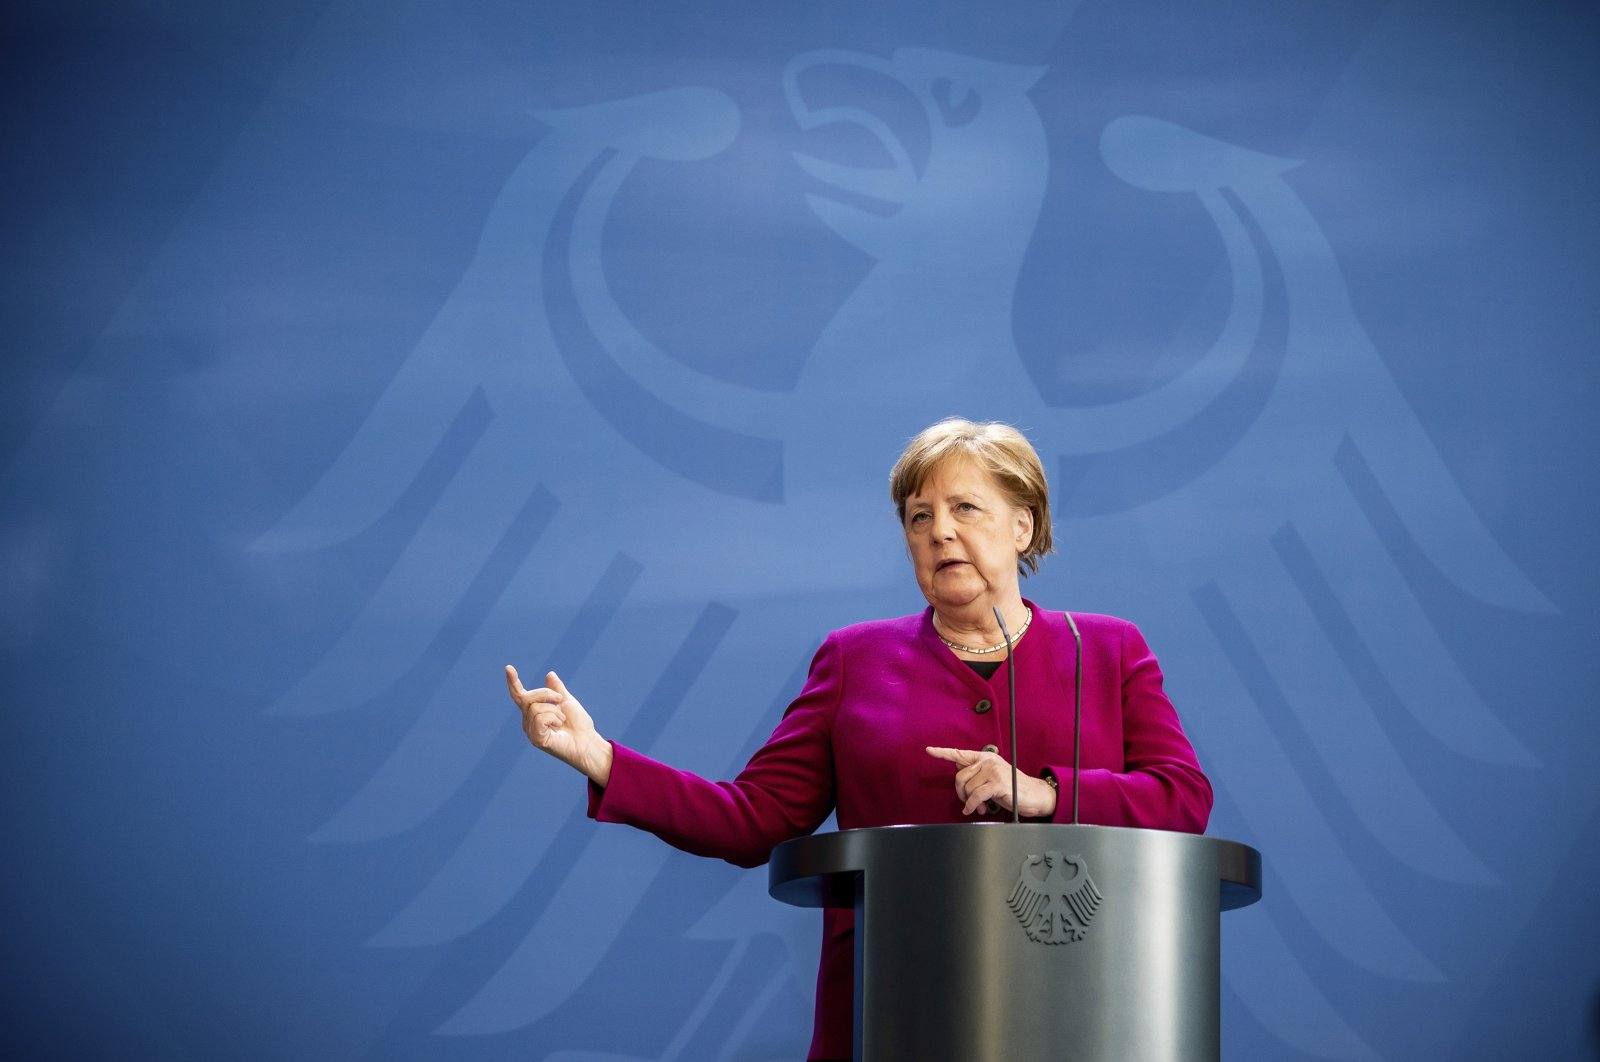 German Chancellor Angela Merkel gives a press conference following the European Council video conference, Berlin, April 23, 2020. (AP Photo)